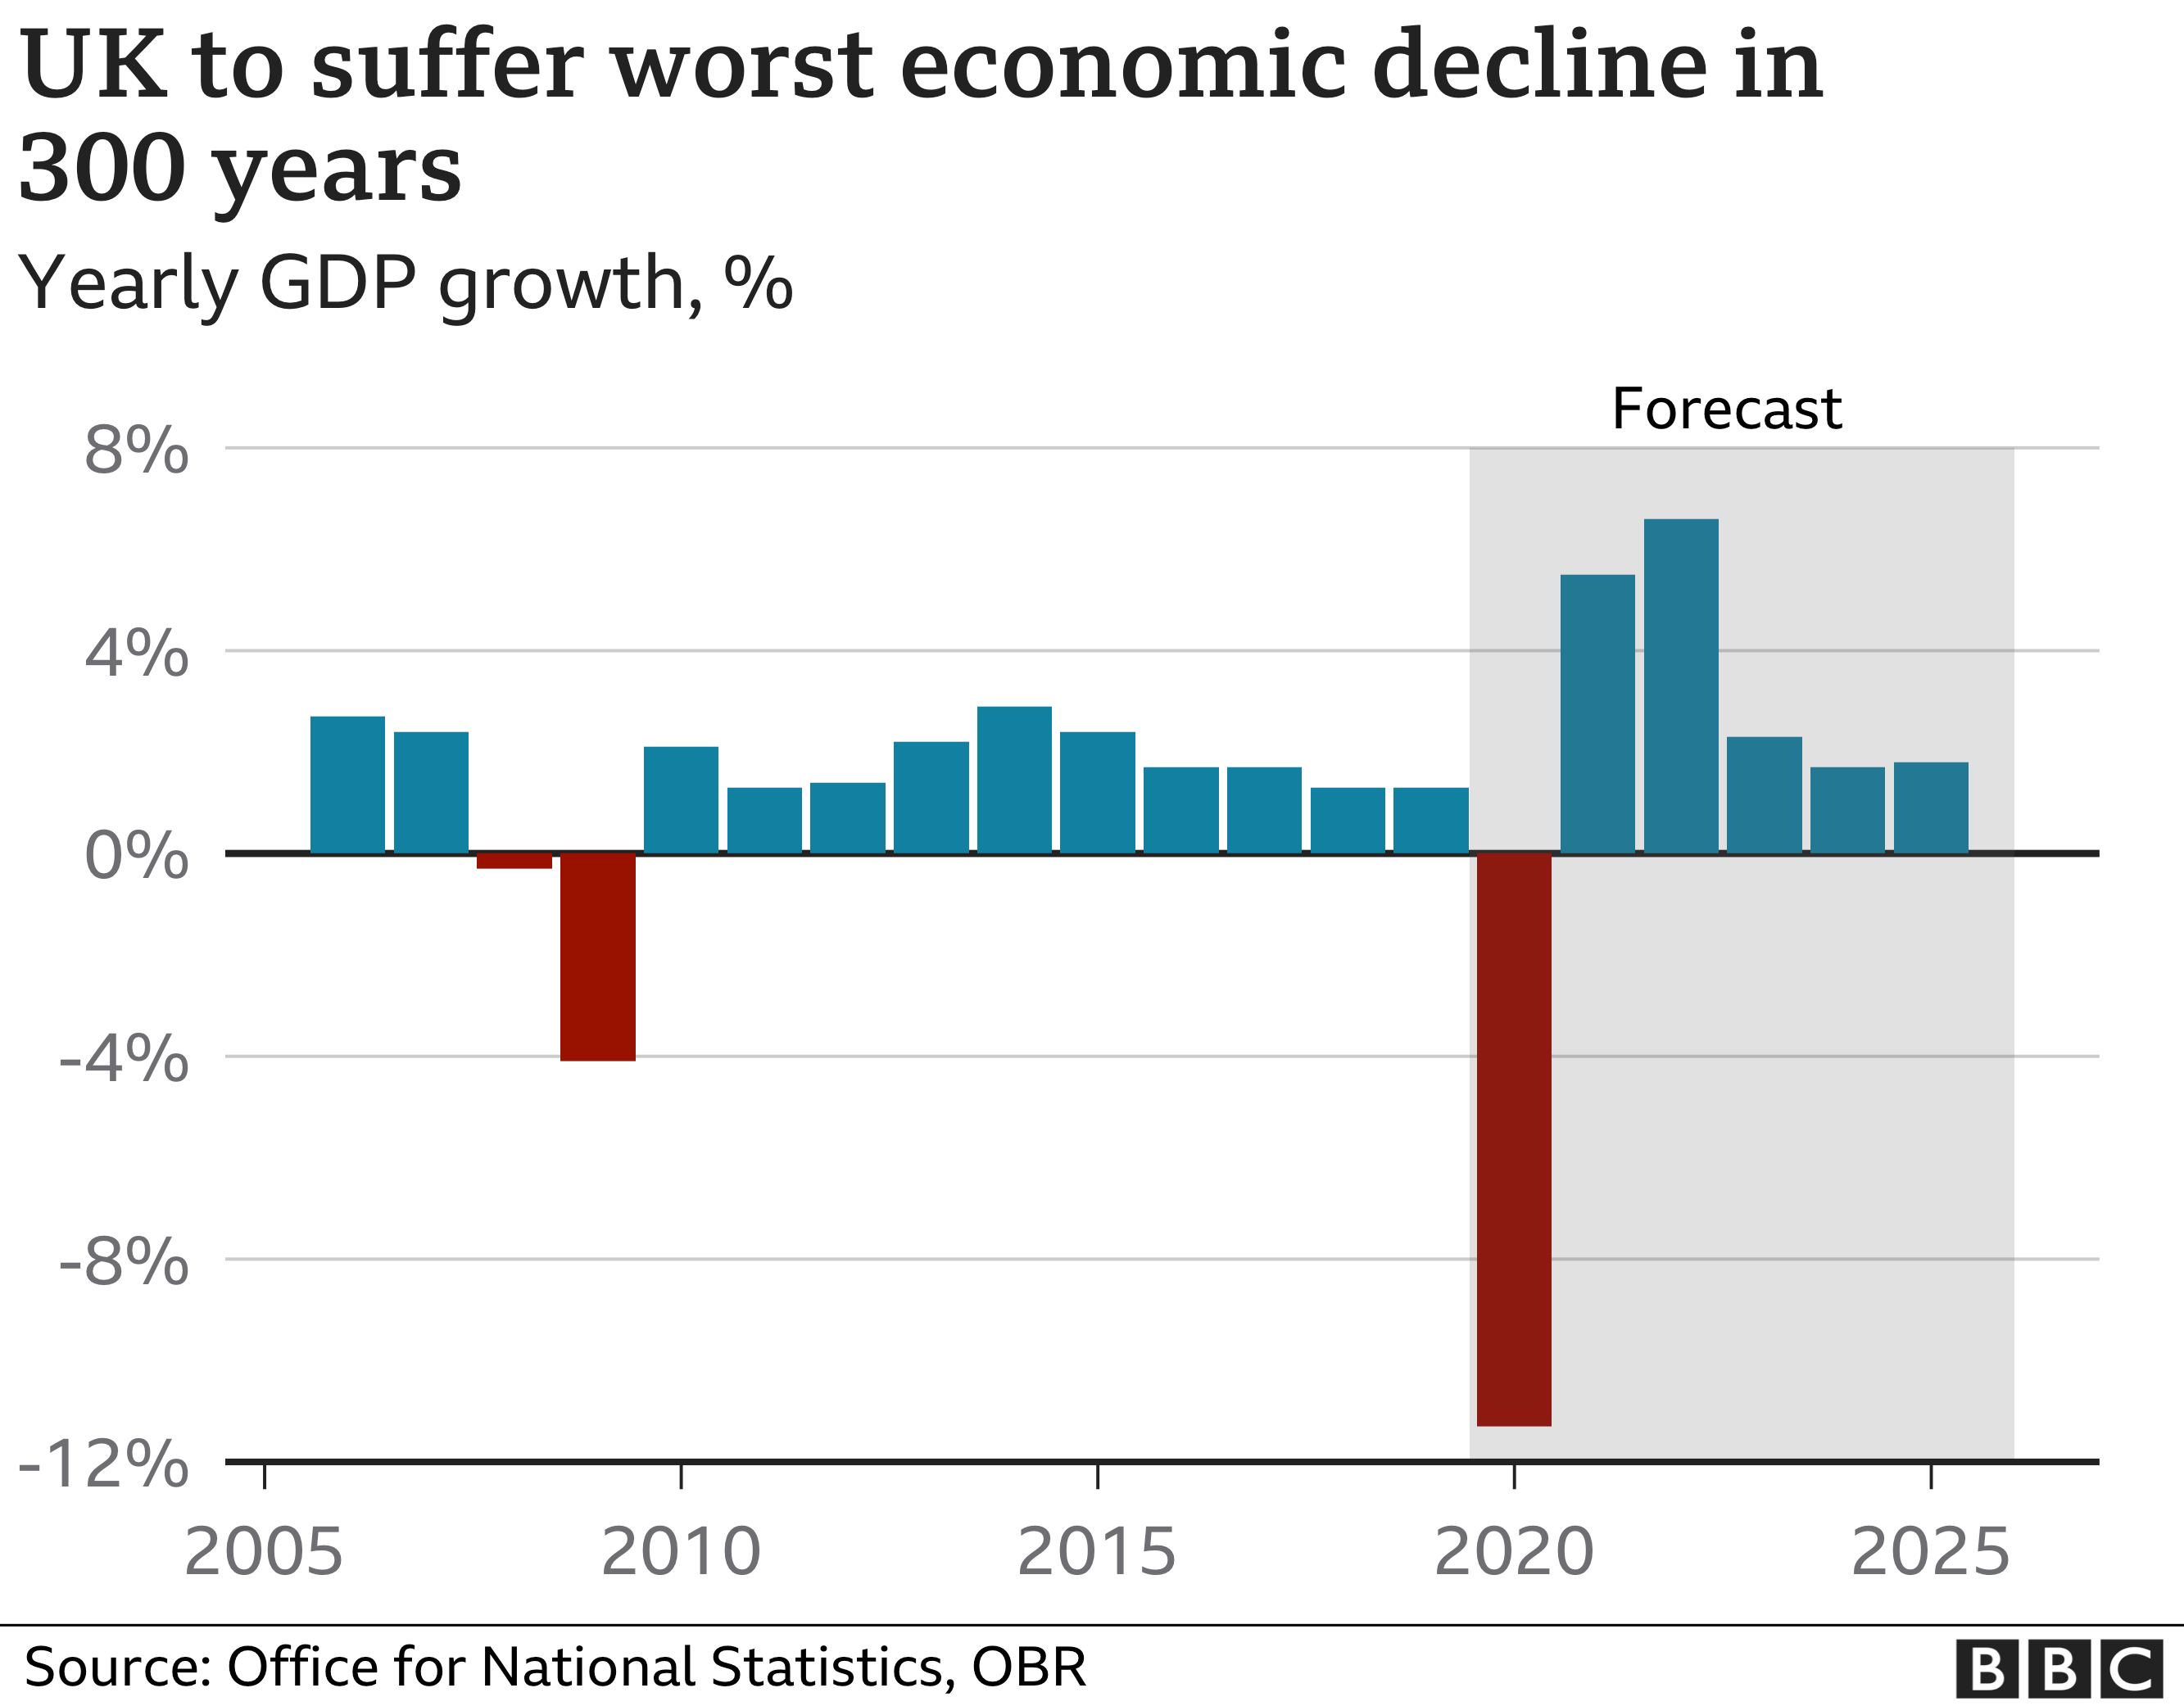 UK GDP forecasts show a big decline of 11.3% in 2020